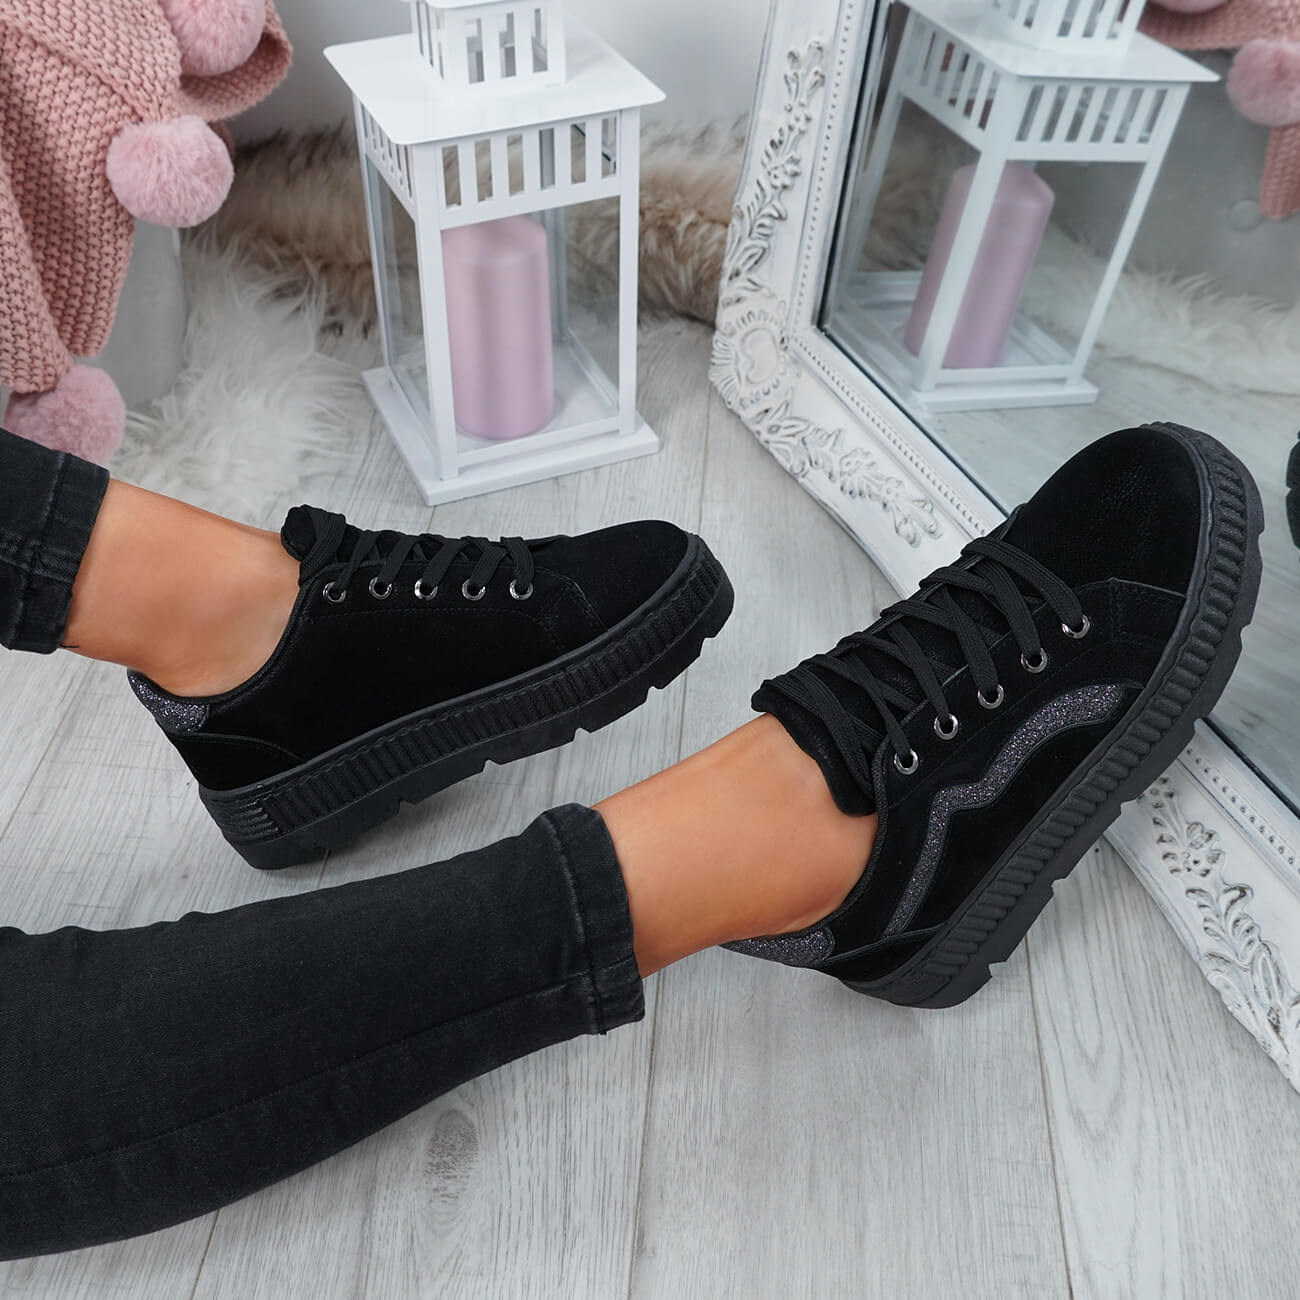 WOMENS-LADIES-LACE-UP-PLATFORM-TRAINERS-PLIMSOLL-SKATE-SNEAKERS-SHOES-SIZE thumbnail 9